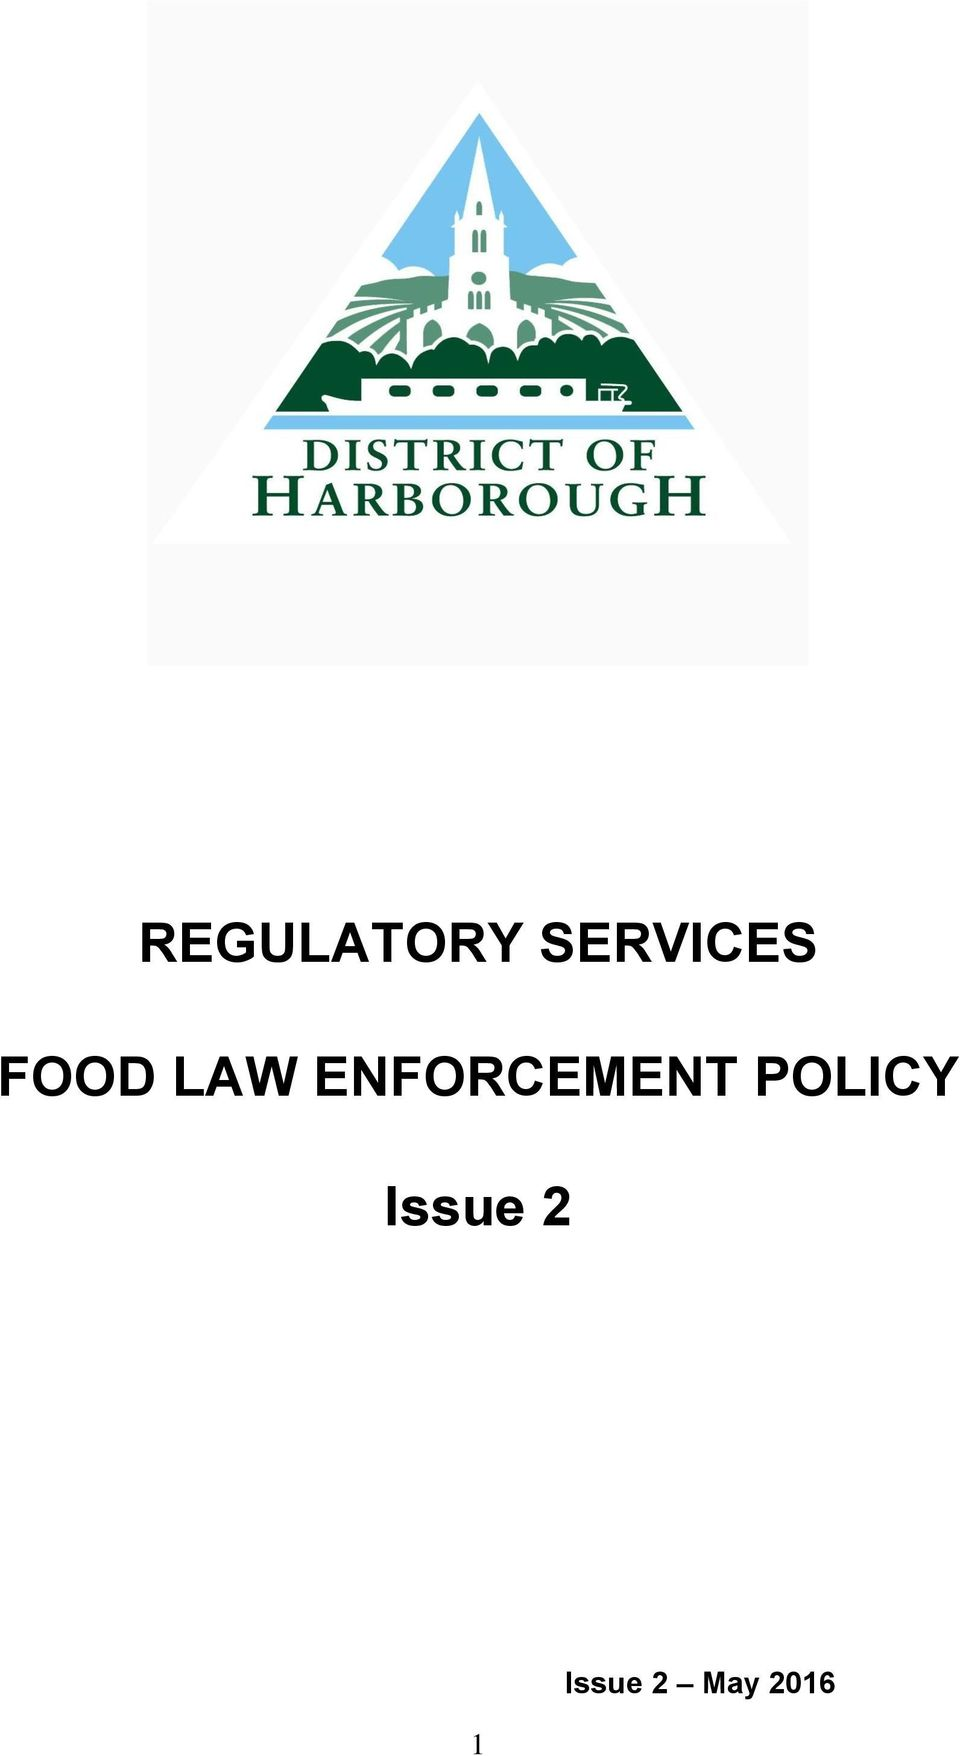 ENFORCEMENT POLICY